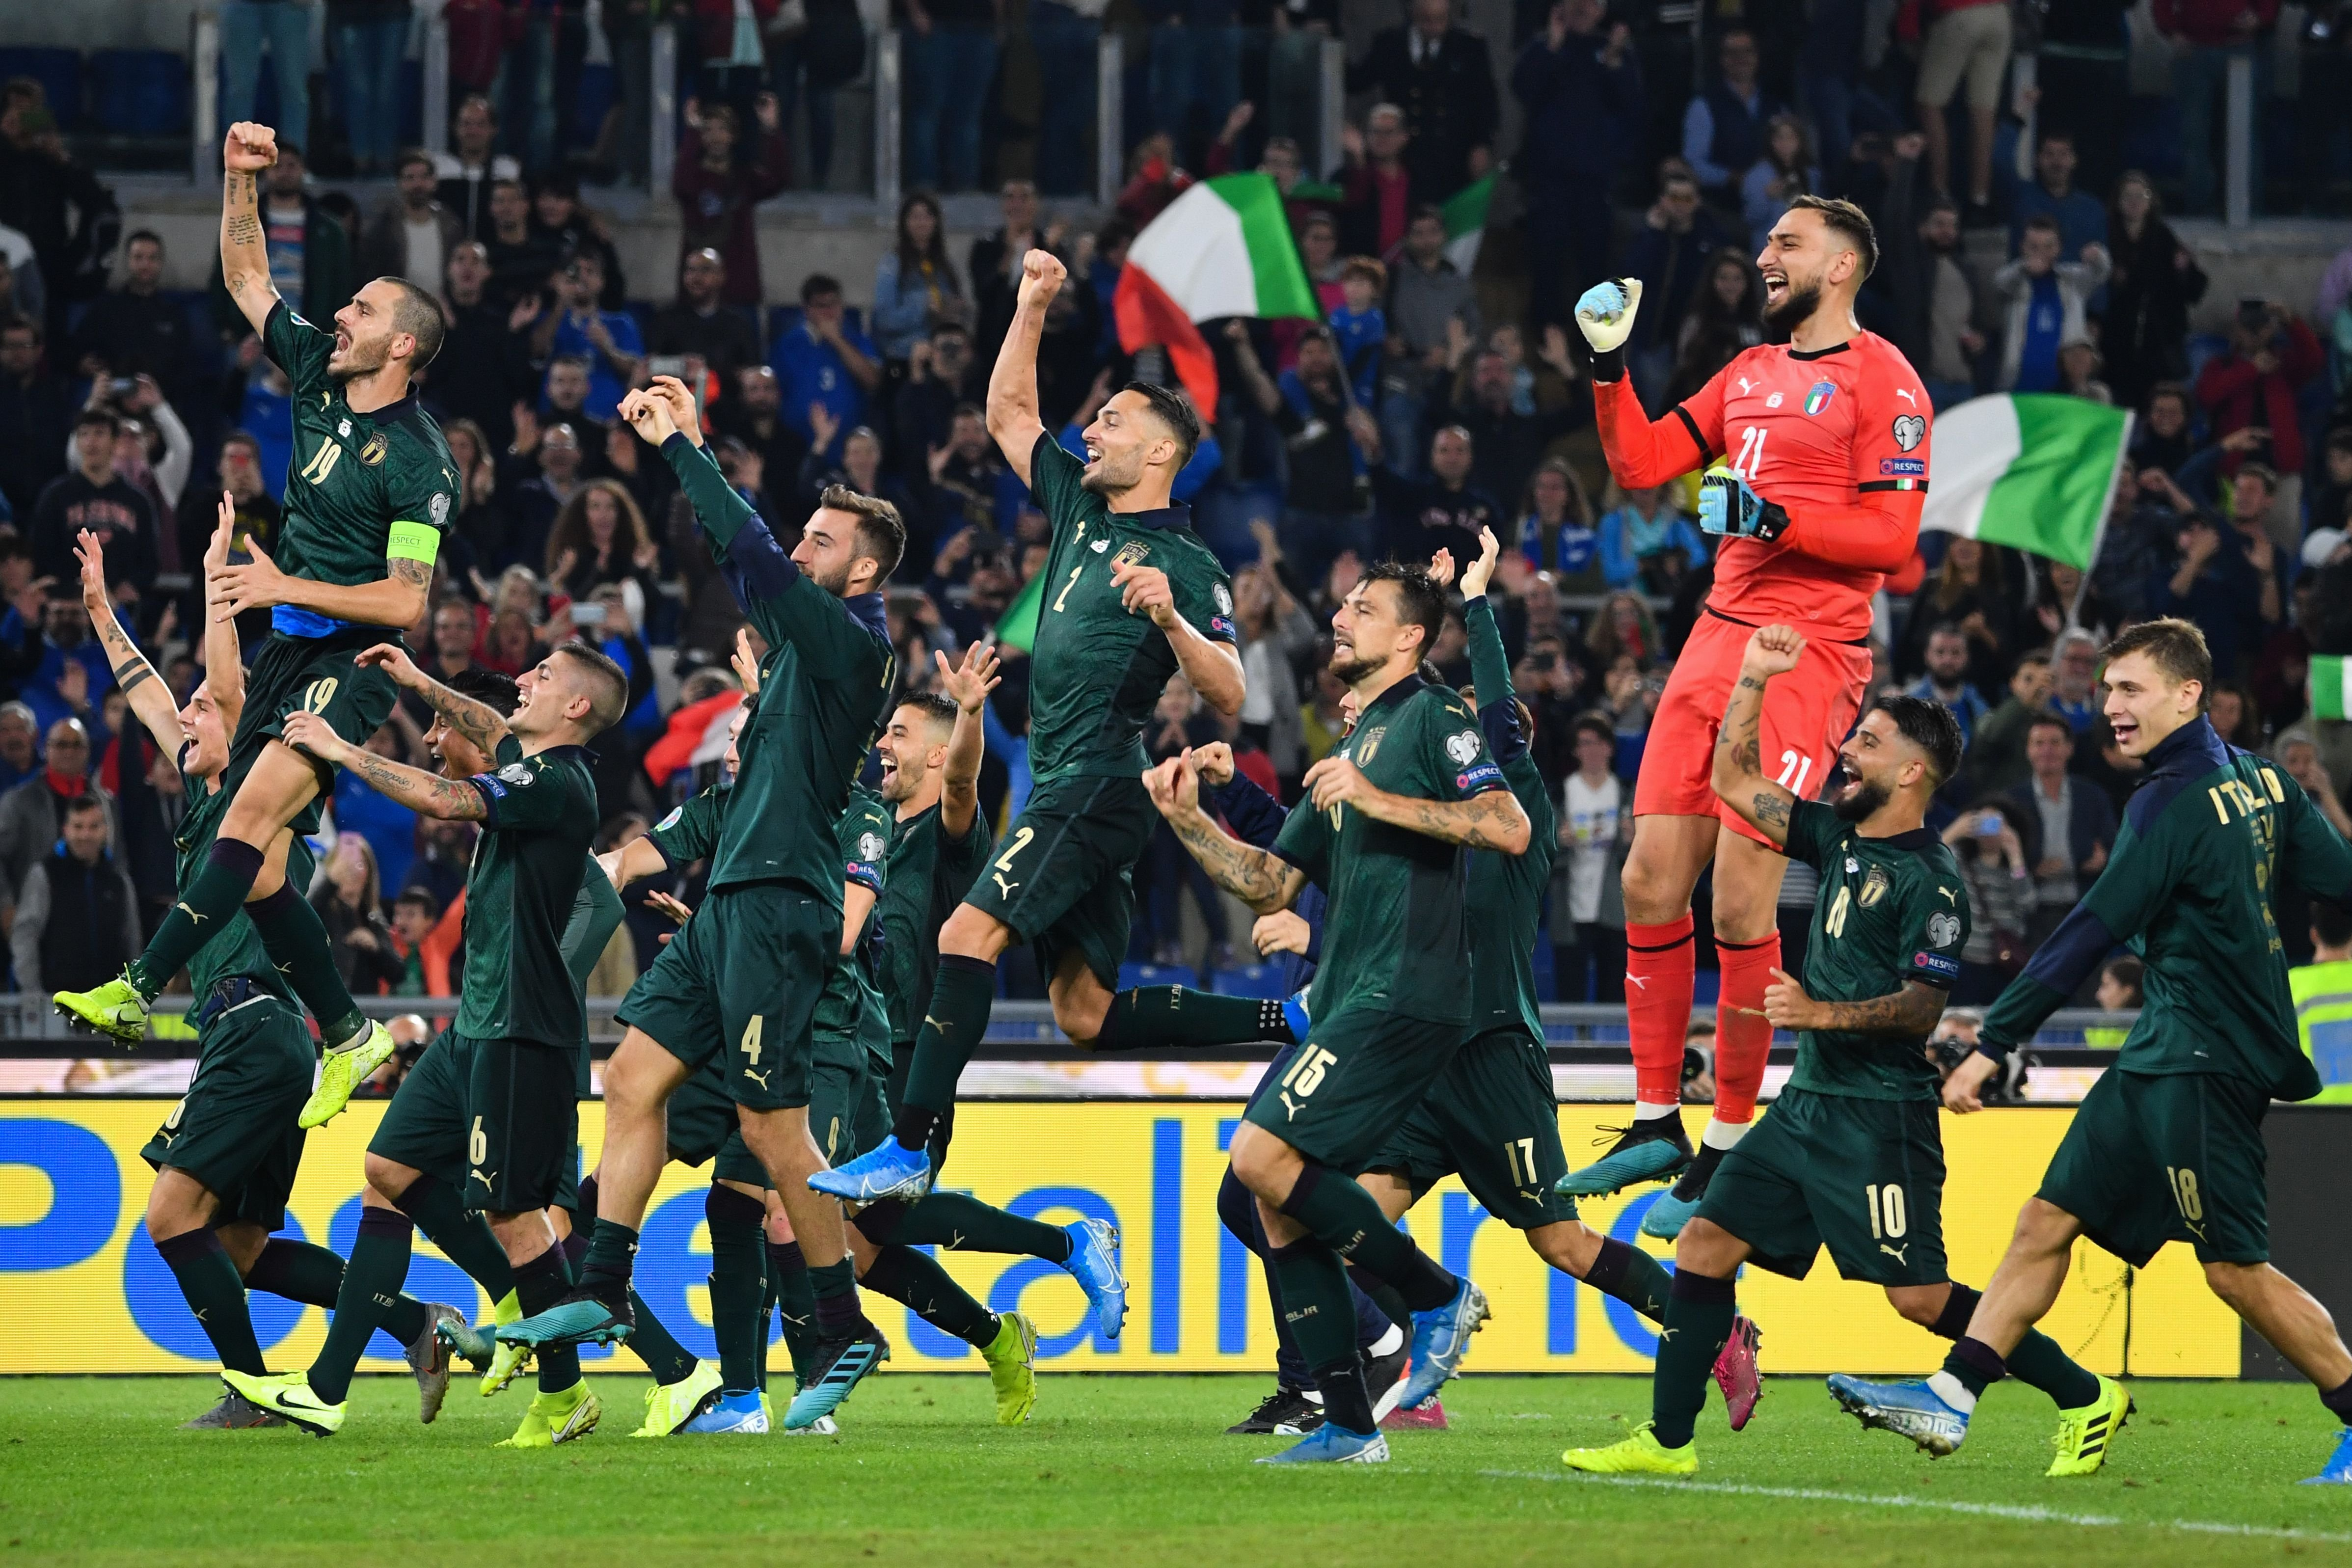 Italy's Azzurri, wearing green, qualify for Euro 2020